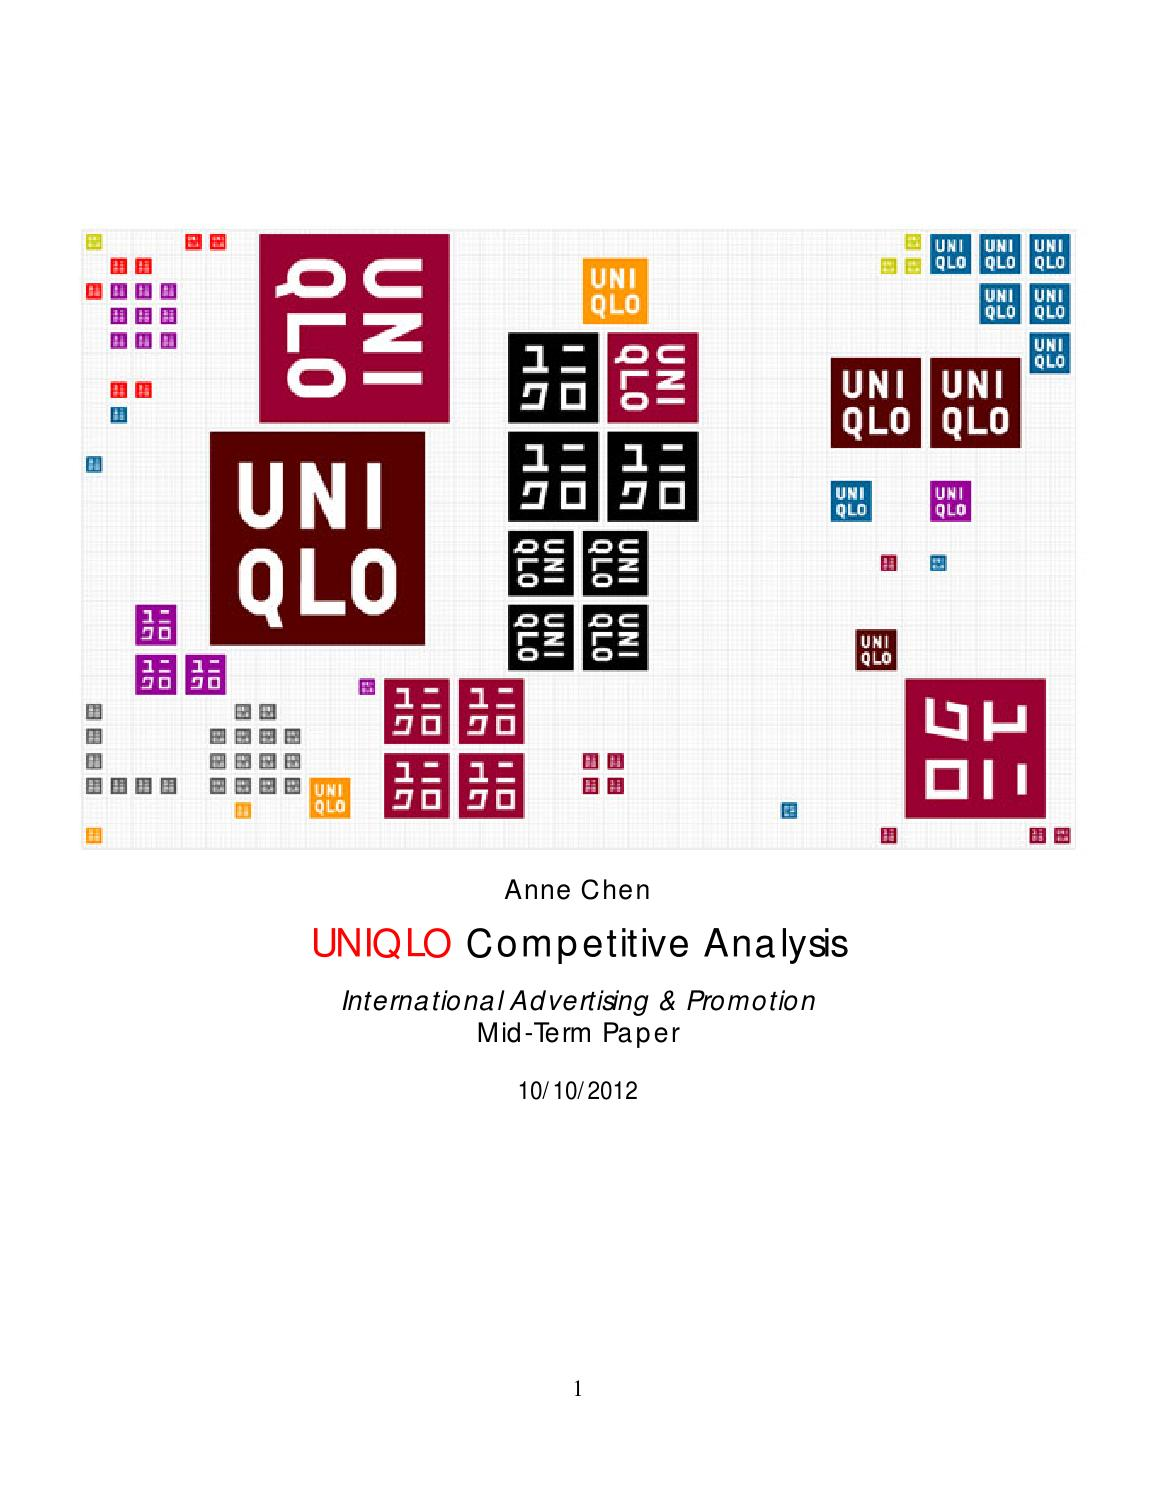 zara swot analysis marketing solutions gate uniqlo competitive  uniqlo competitive analysis by chena issuu